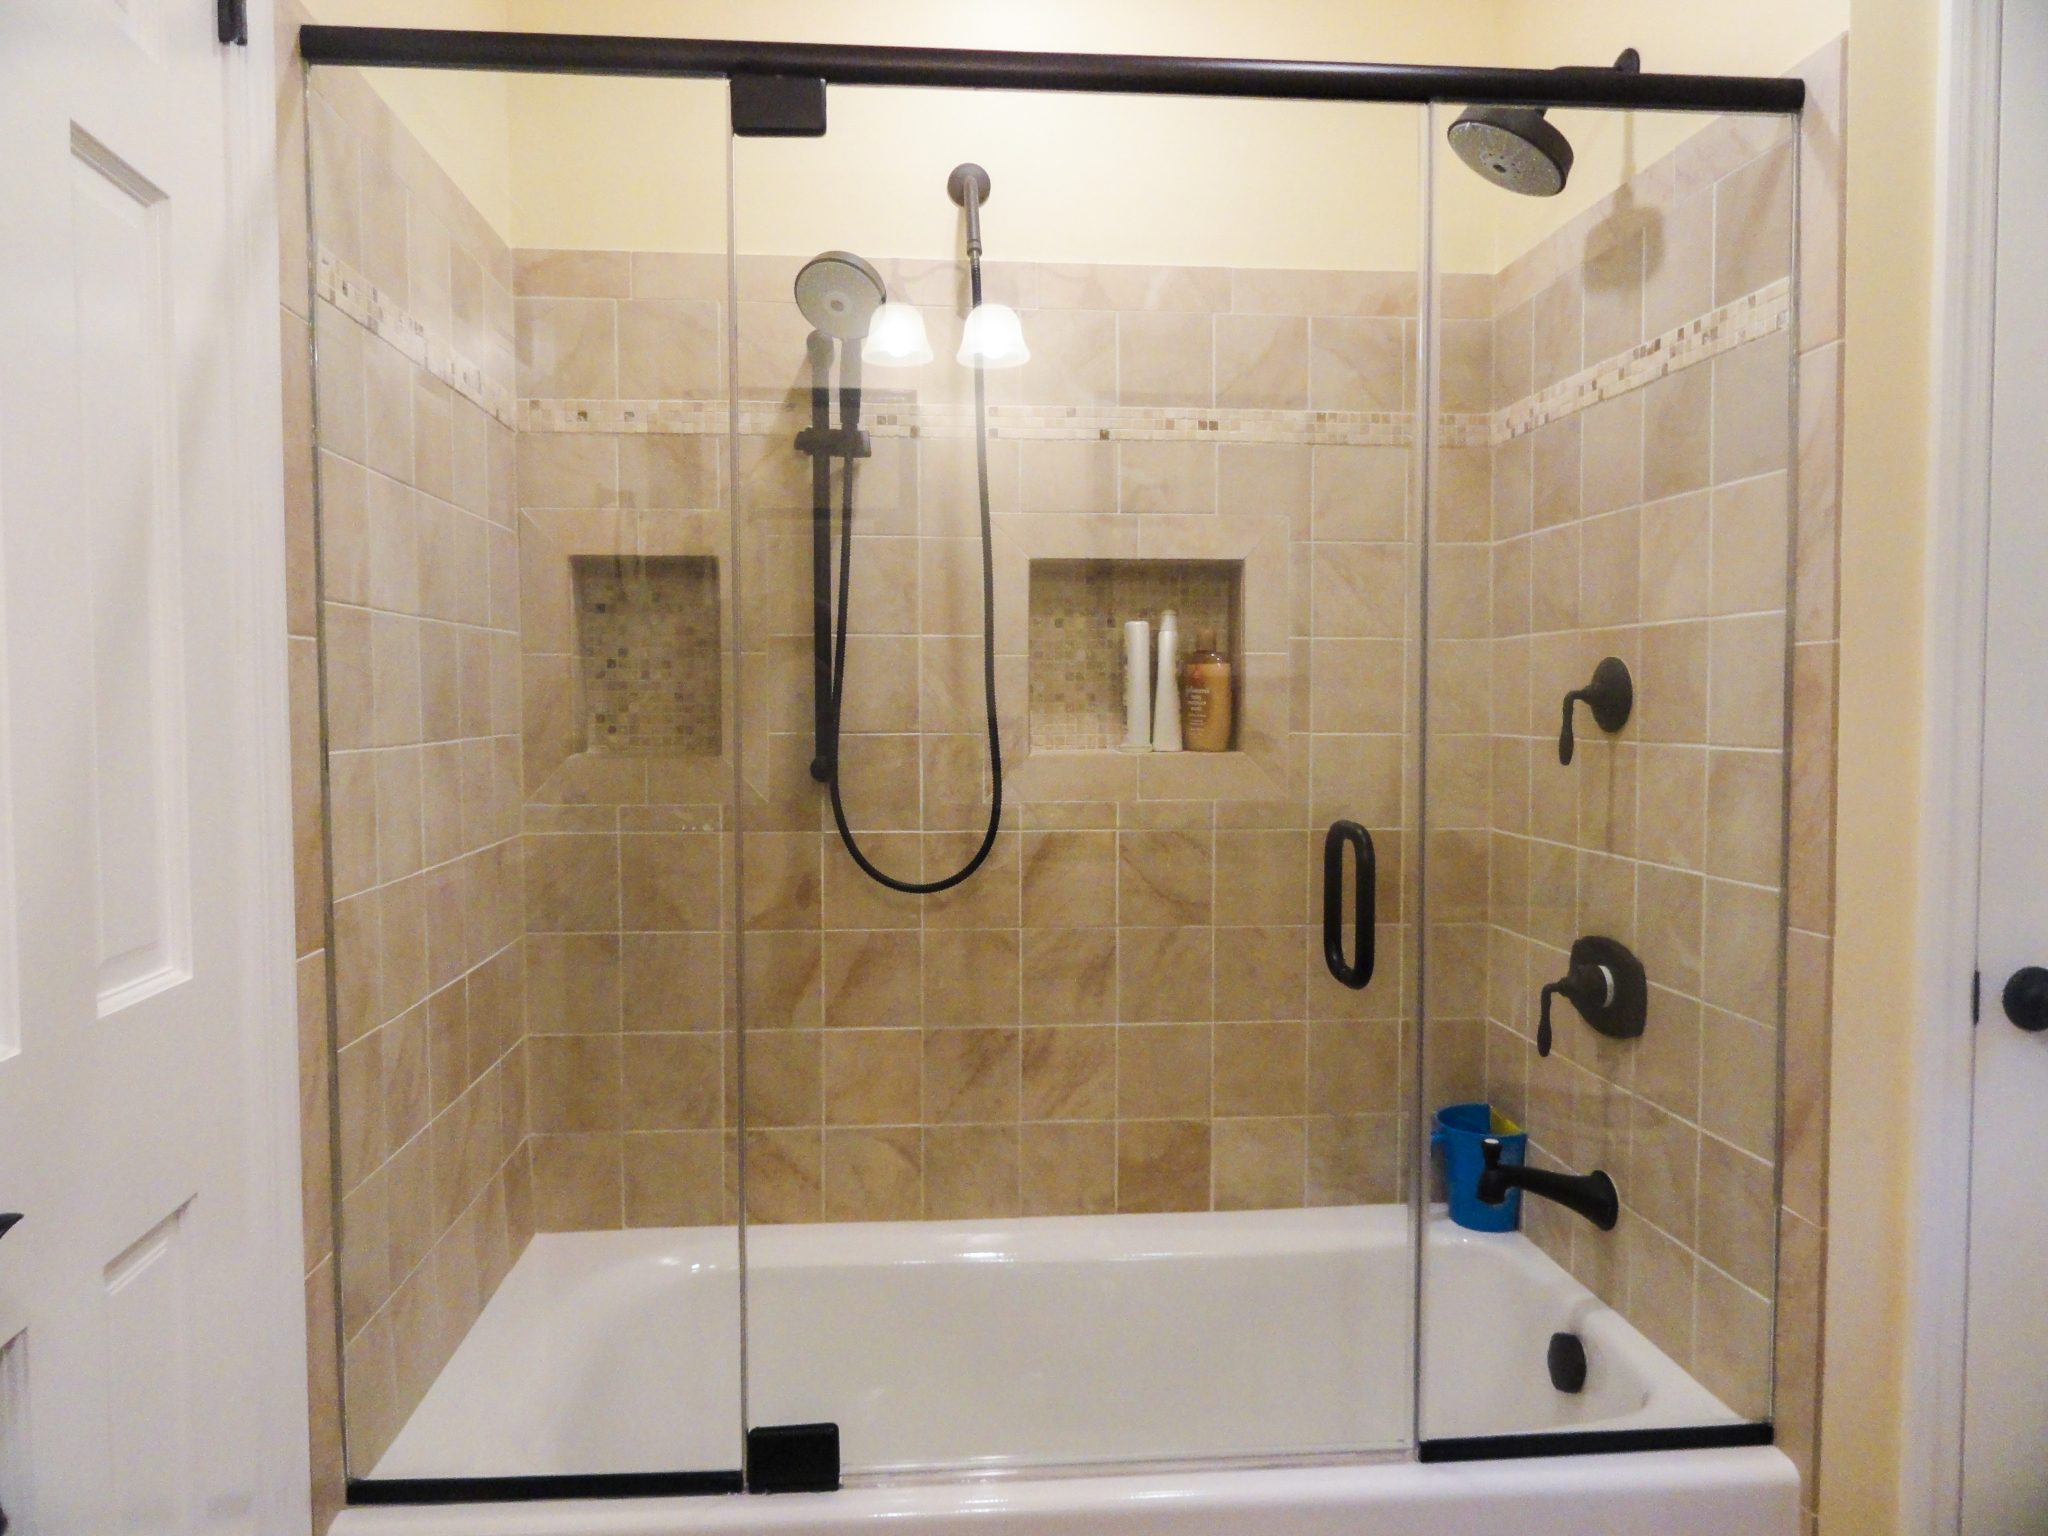 shower glass doors nj - Bathtub Shower Doors